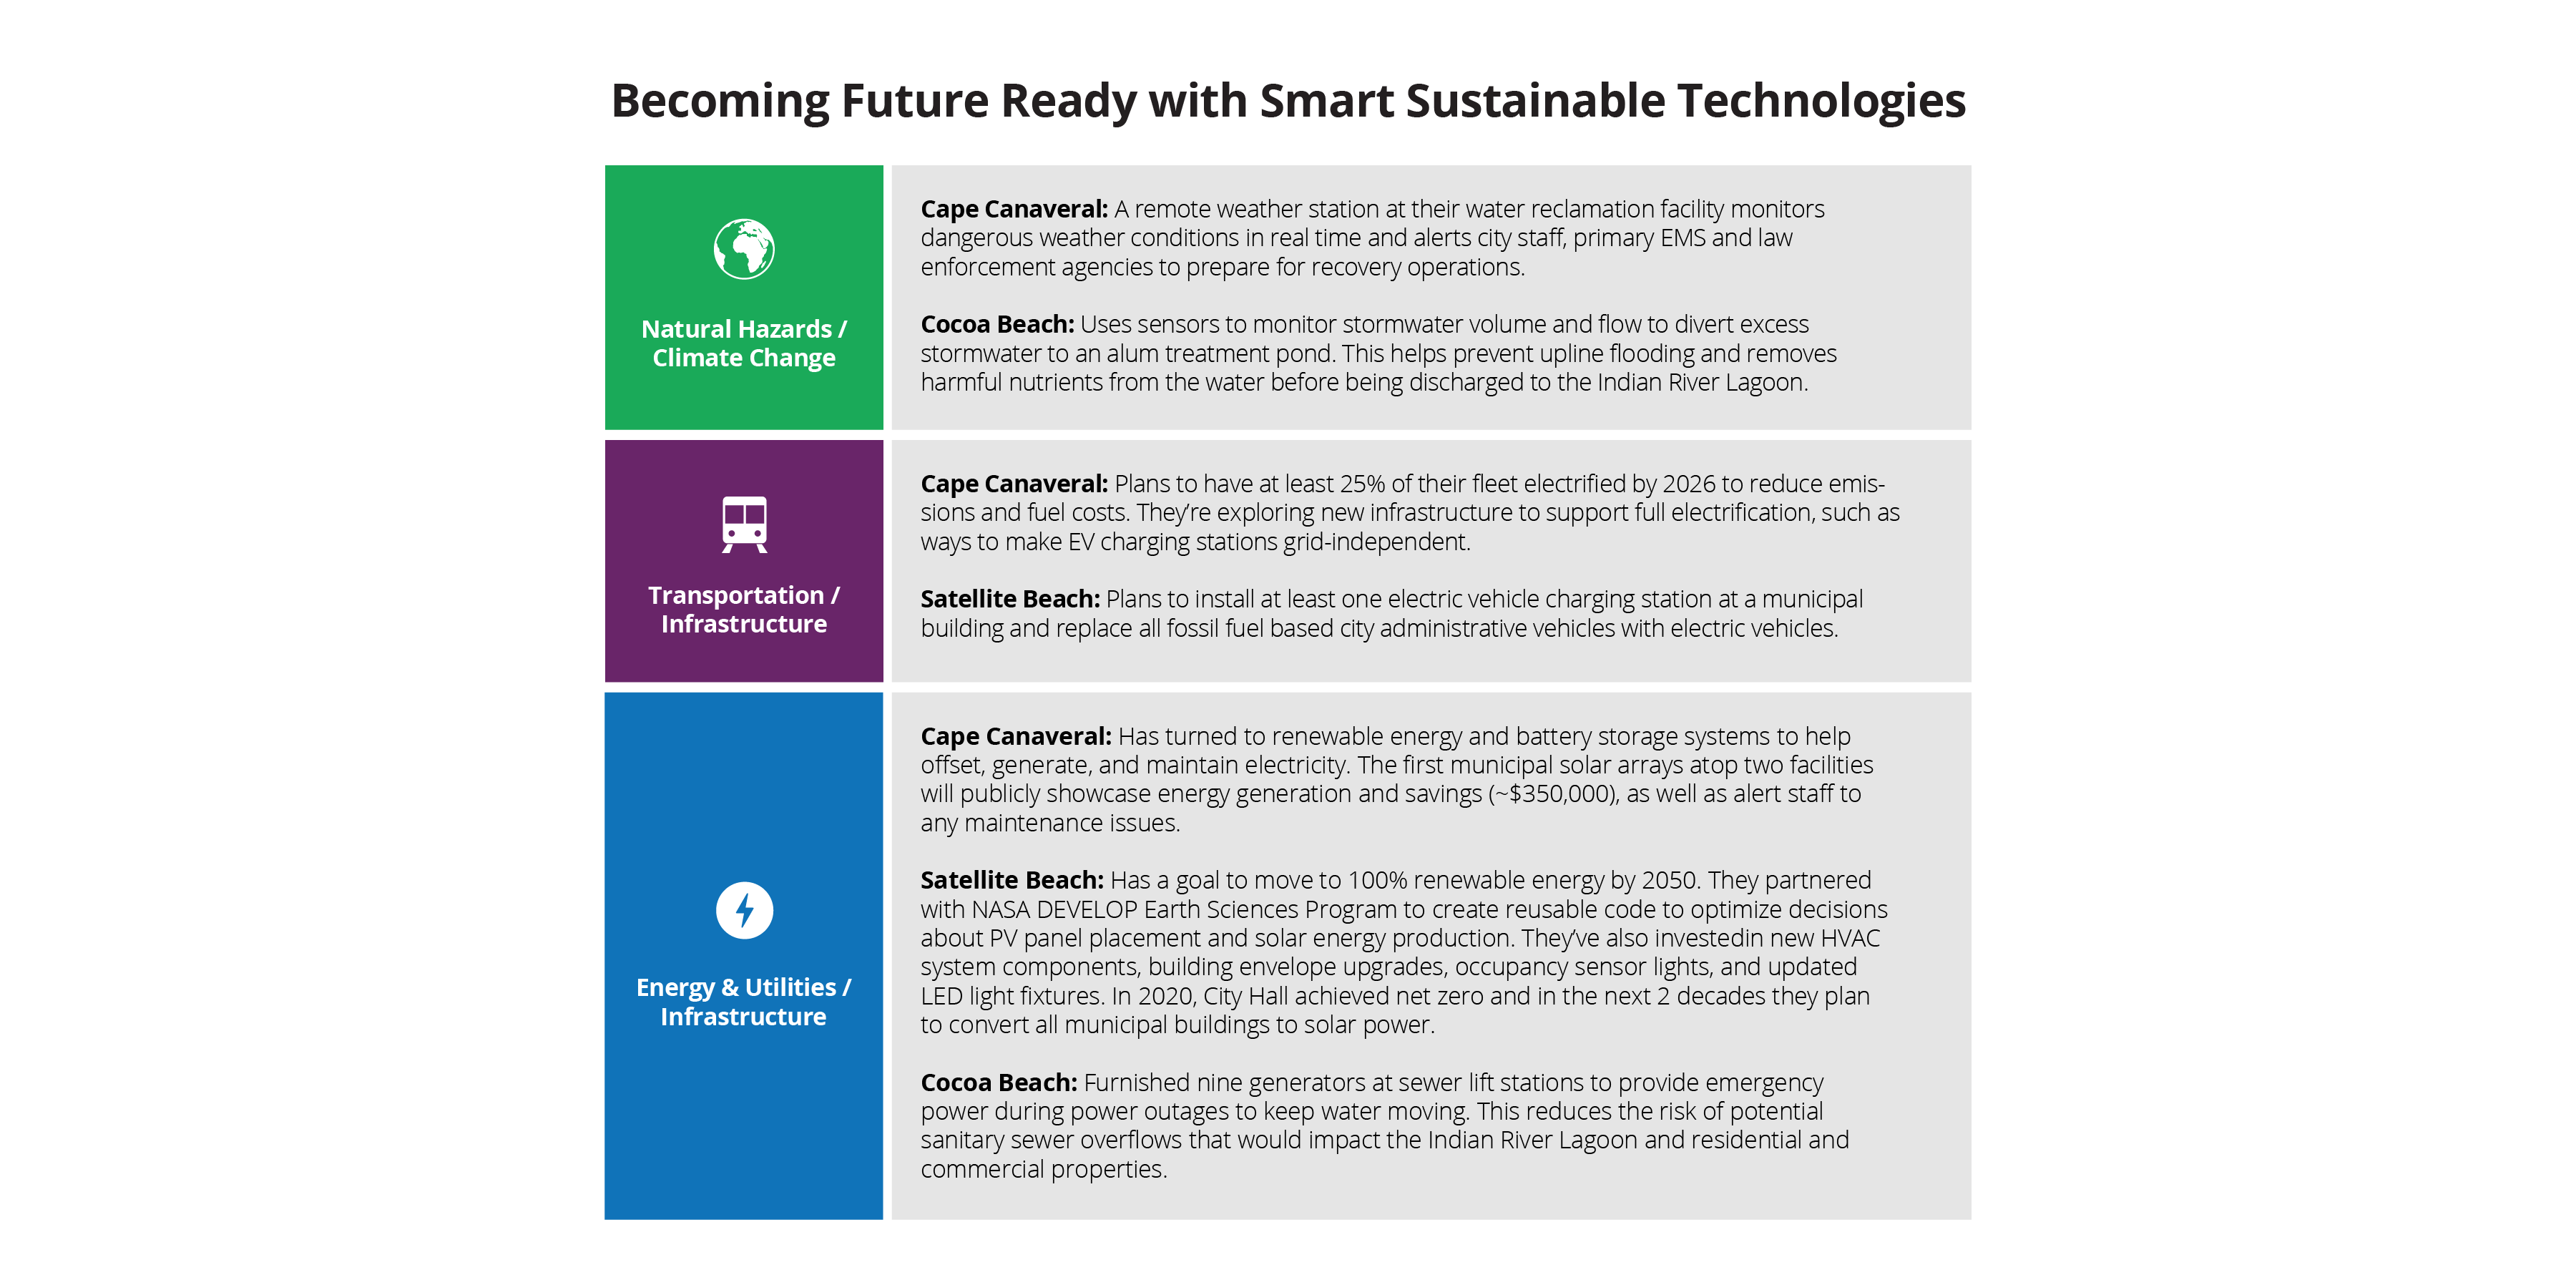 Becoming future-ready with smart sustainable technologies